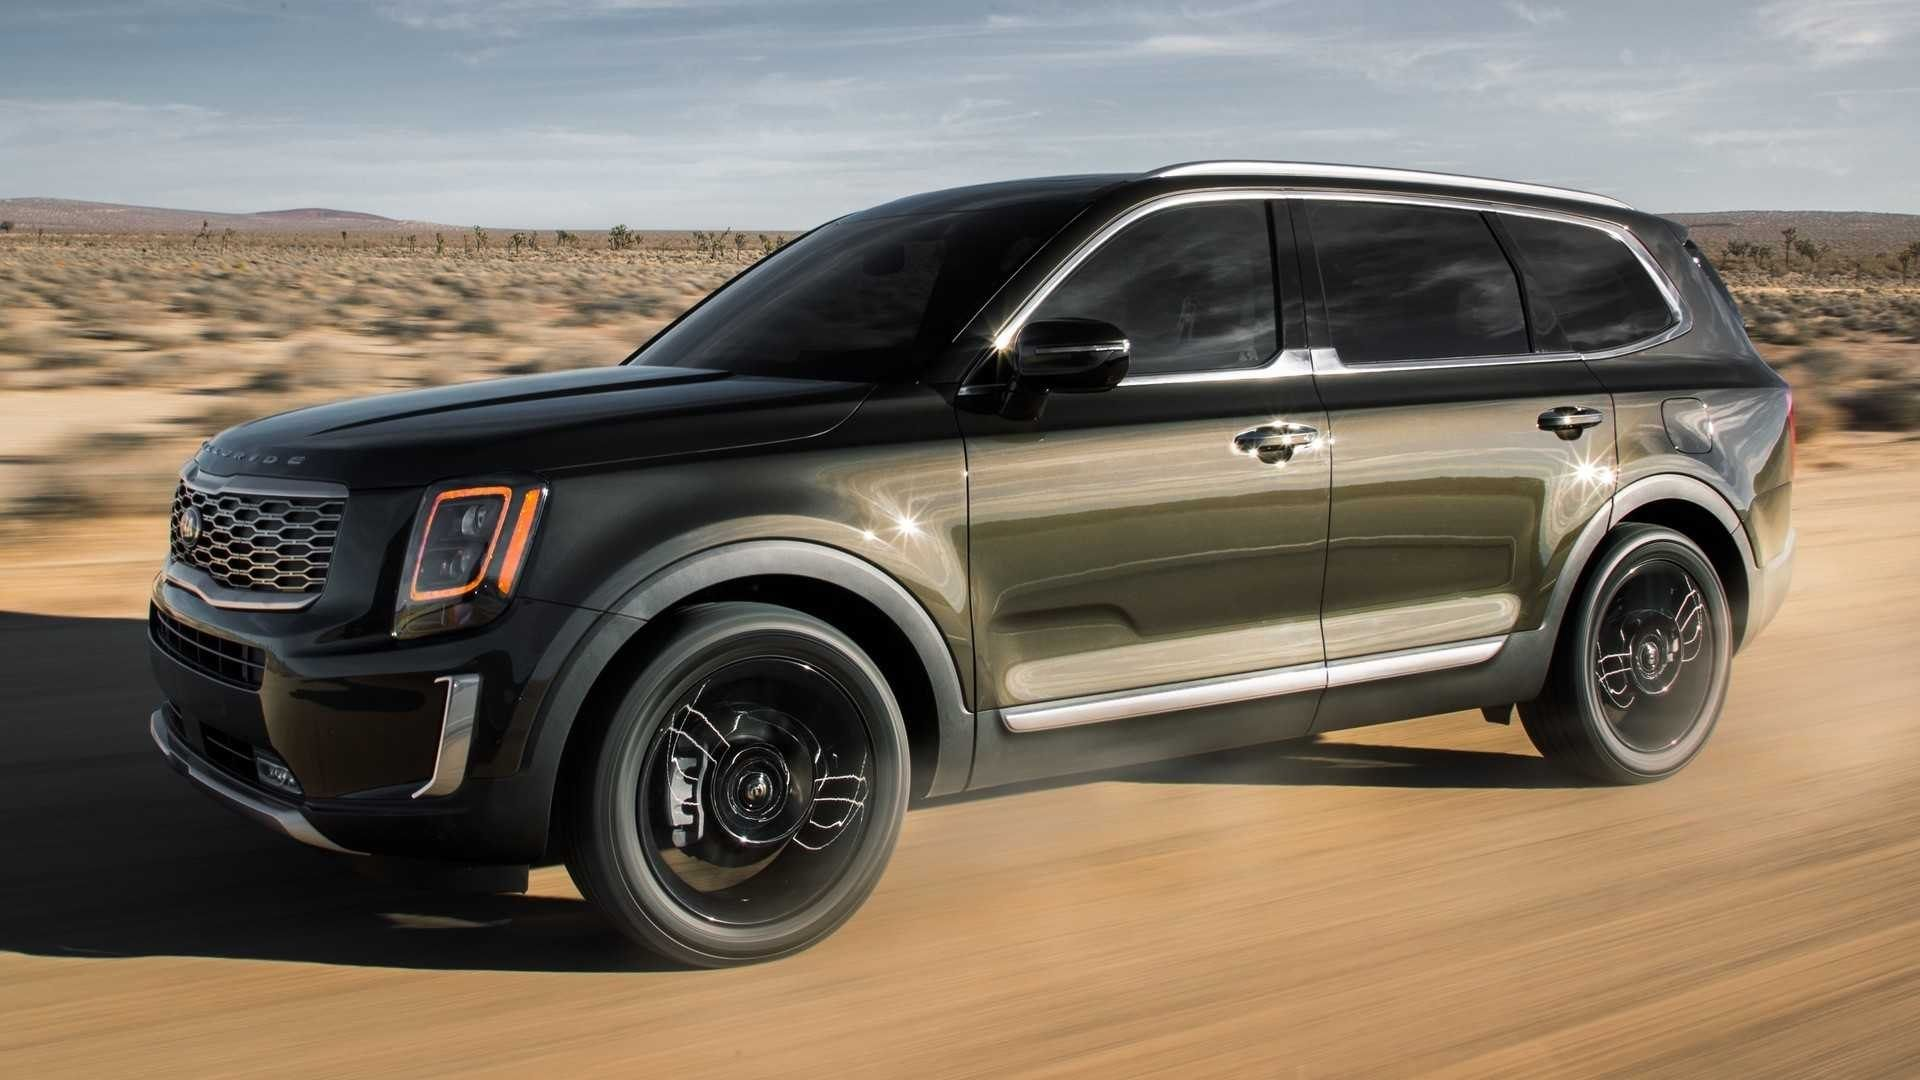 Most Expensive 2020 Kia Telluride Costs 50 775 Interior Exterior